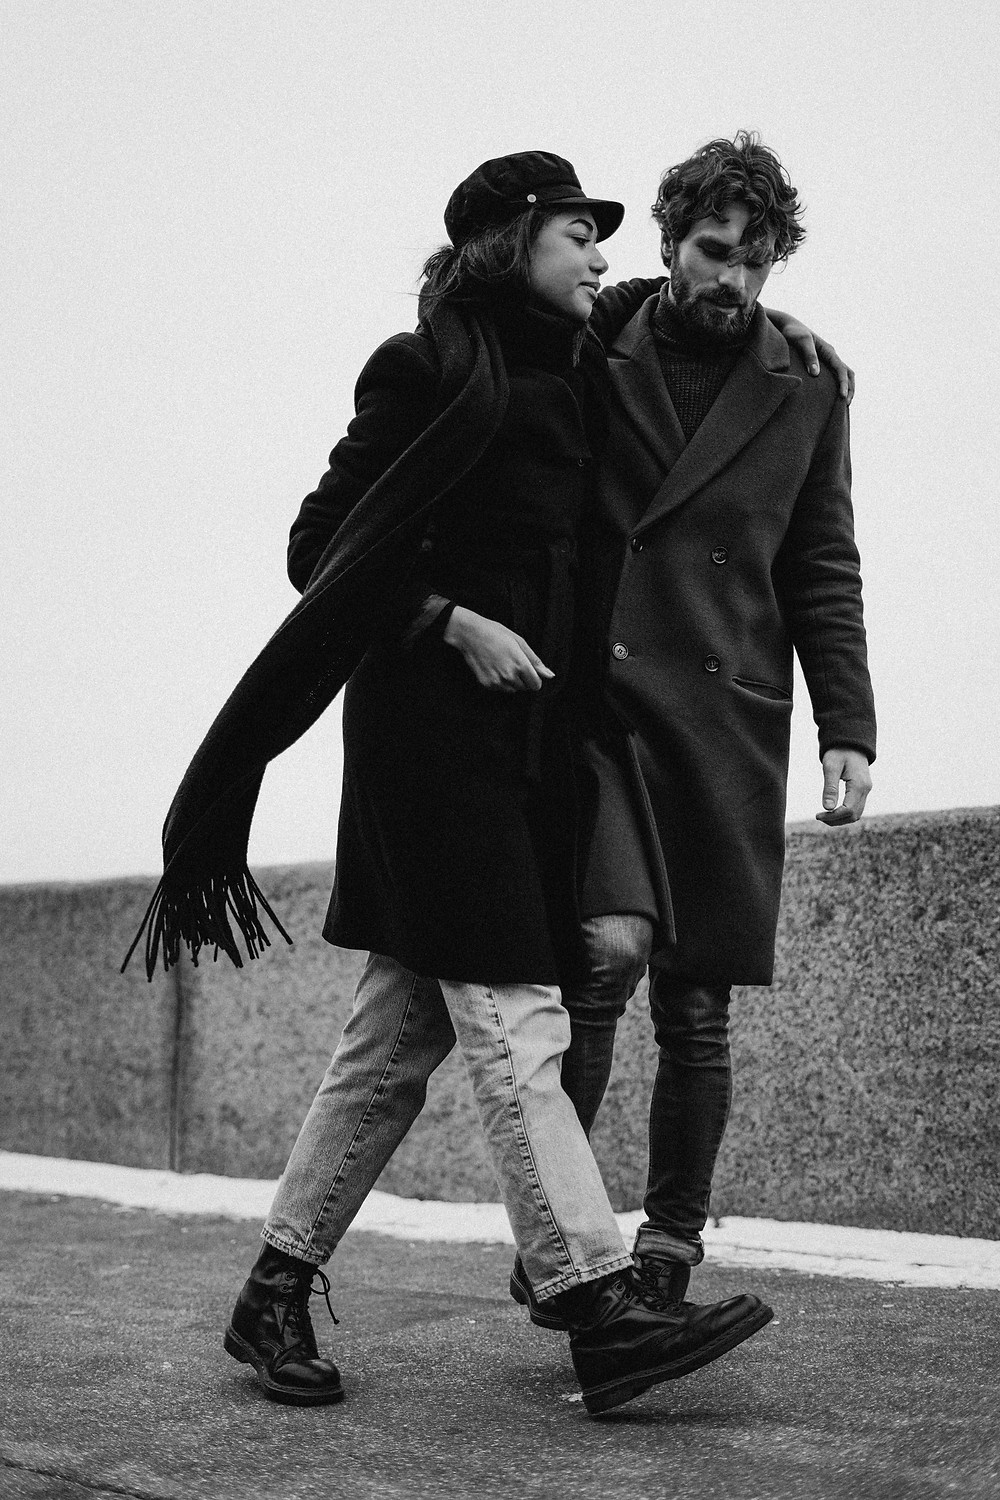 a man and a woman both in dark overcoats